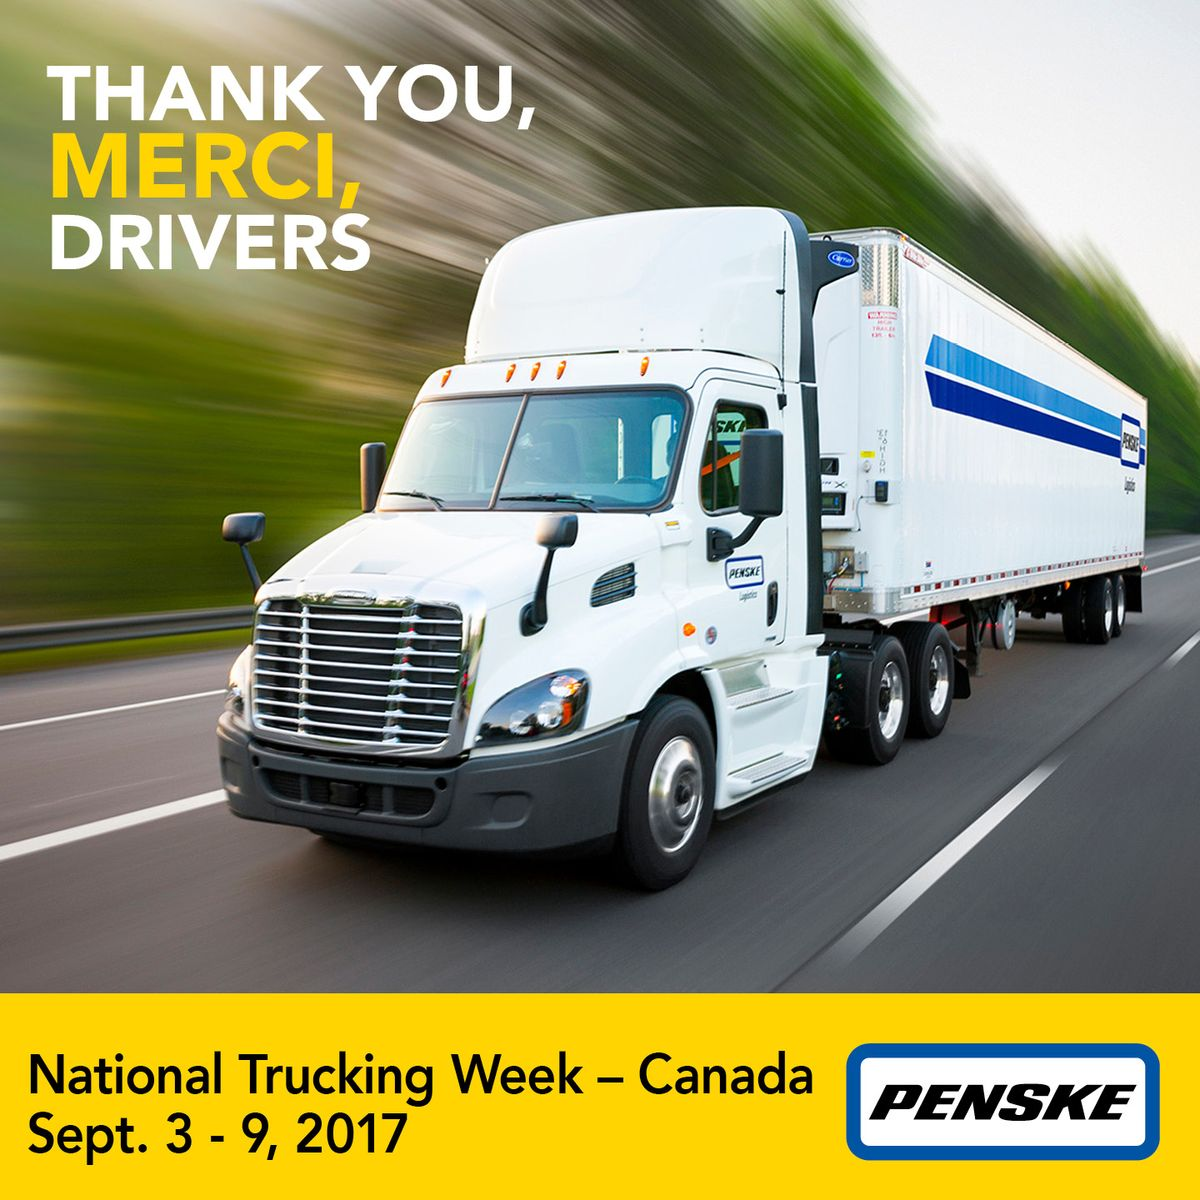 Thanking Truck Drivers for Moving Our World Forward